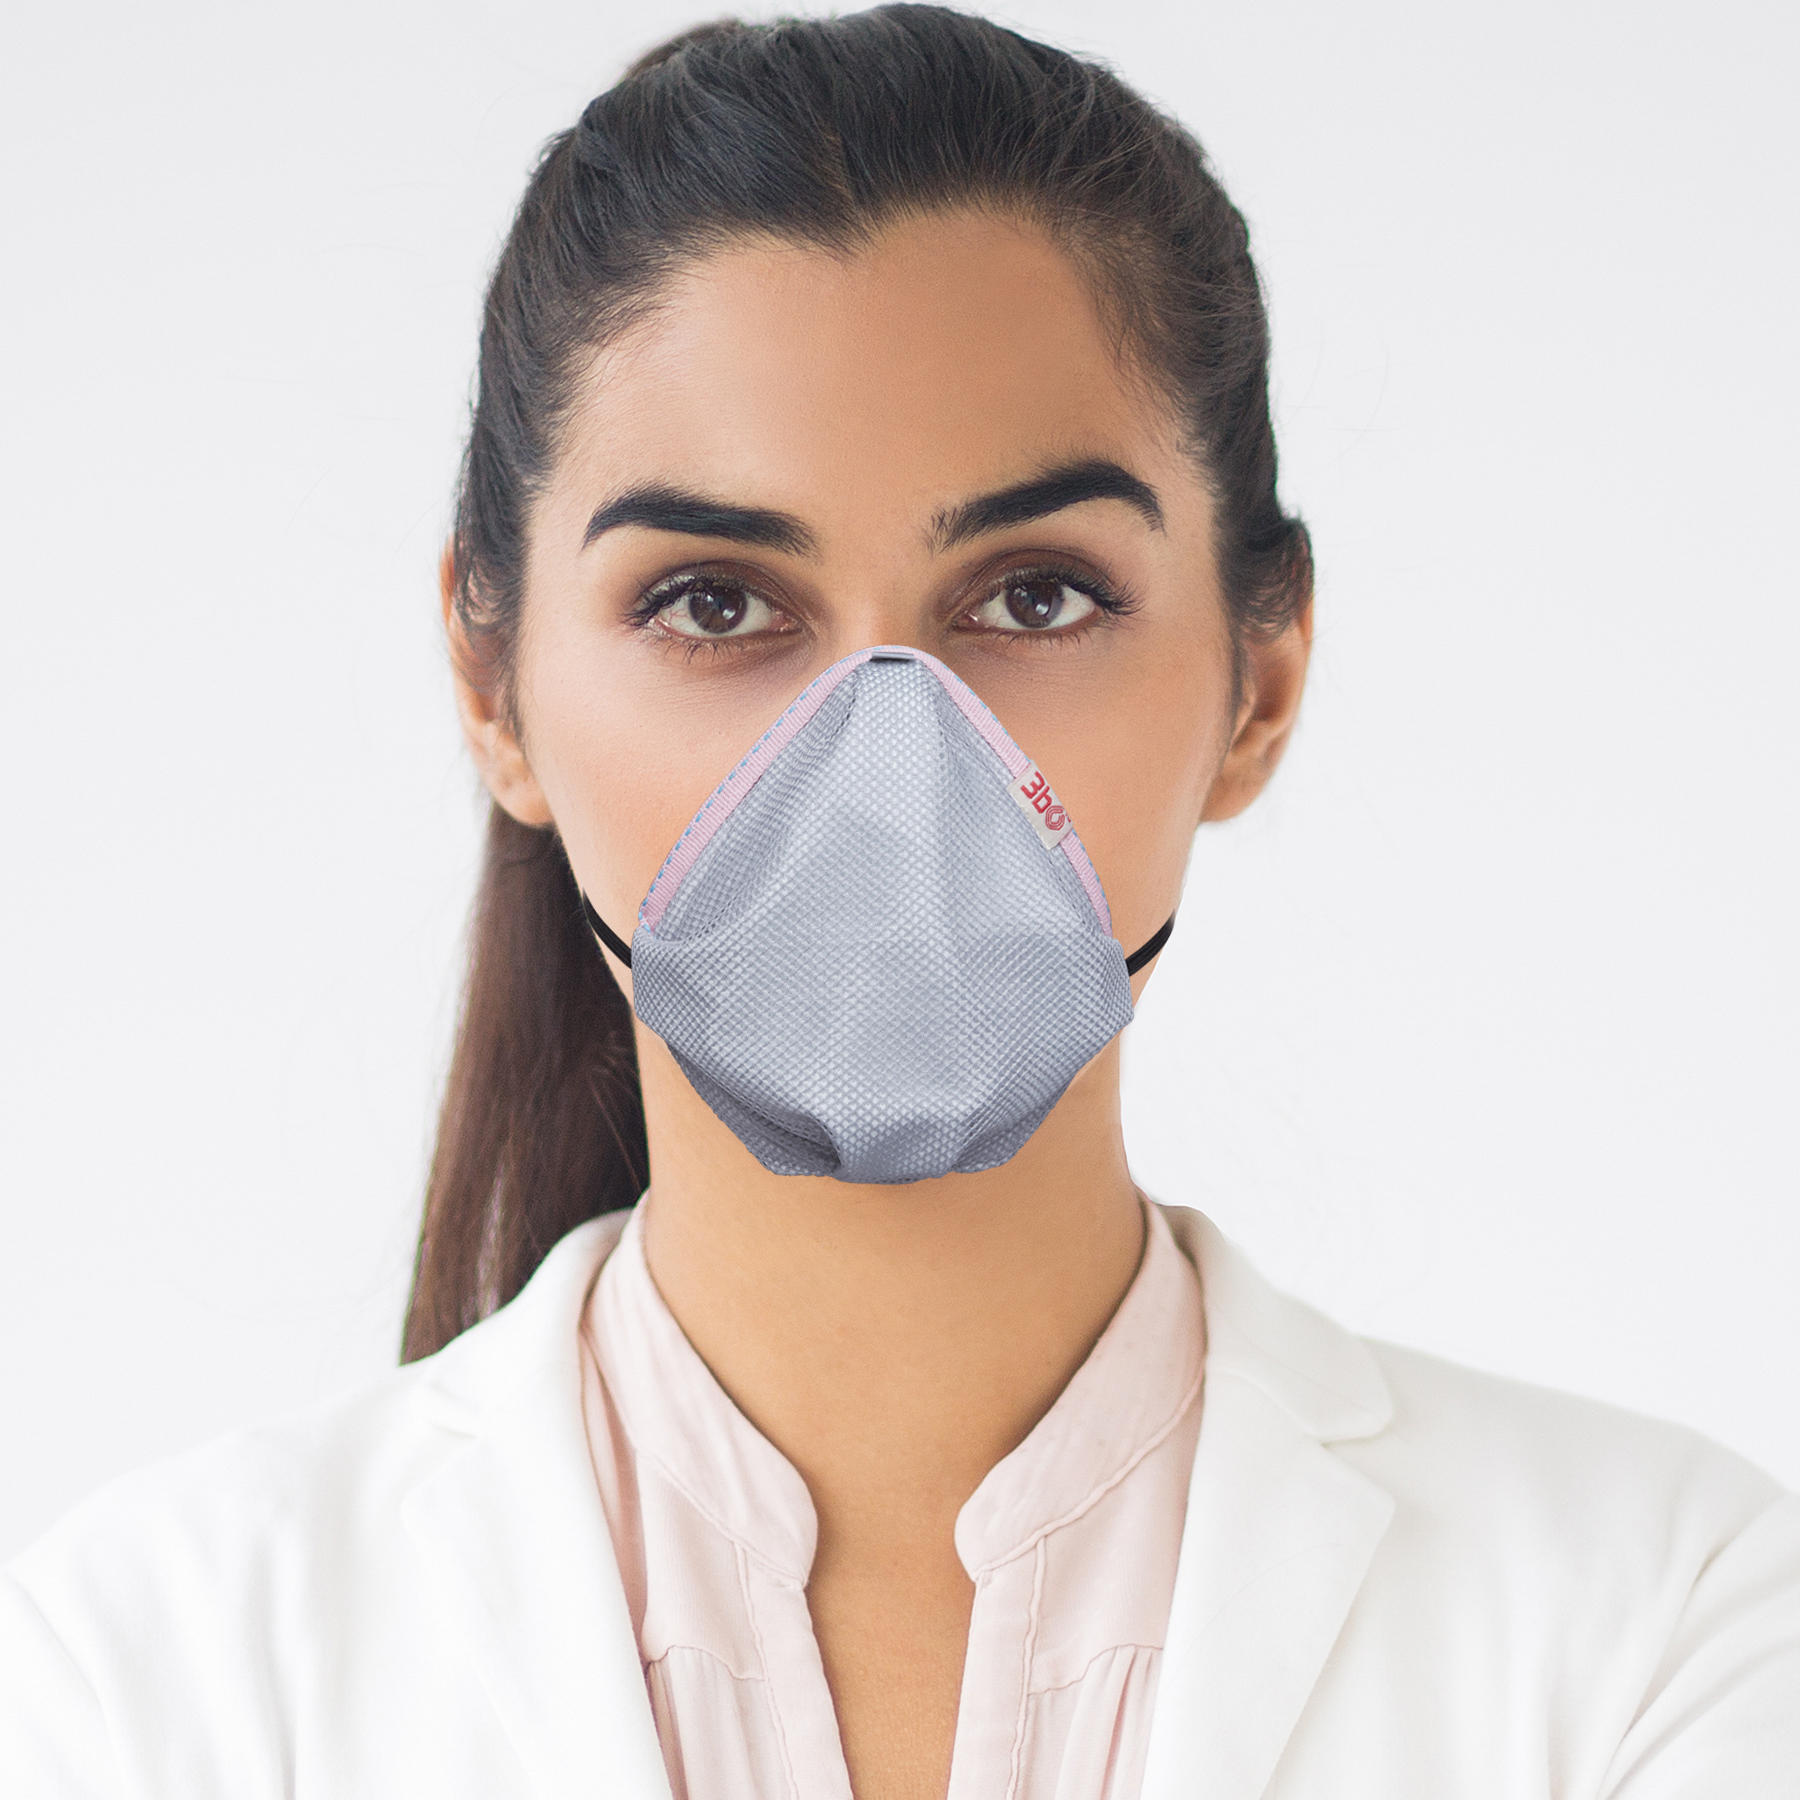 3bO -India's first face mask based on triboelectricity